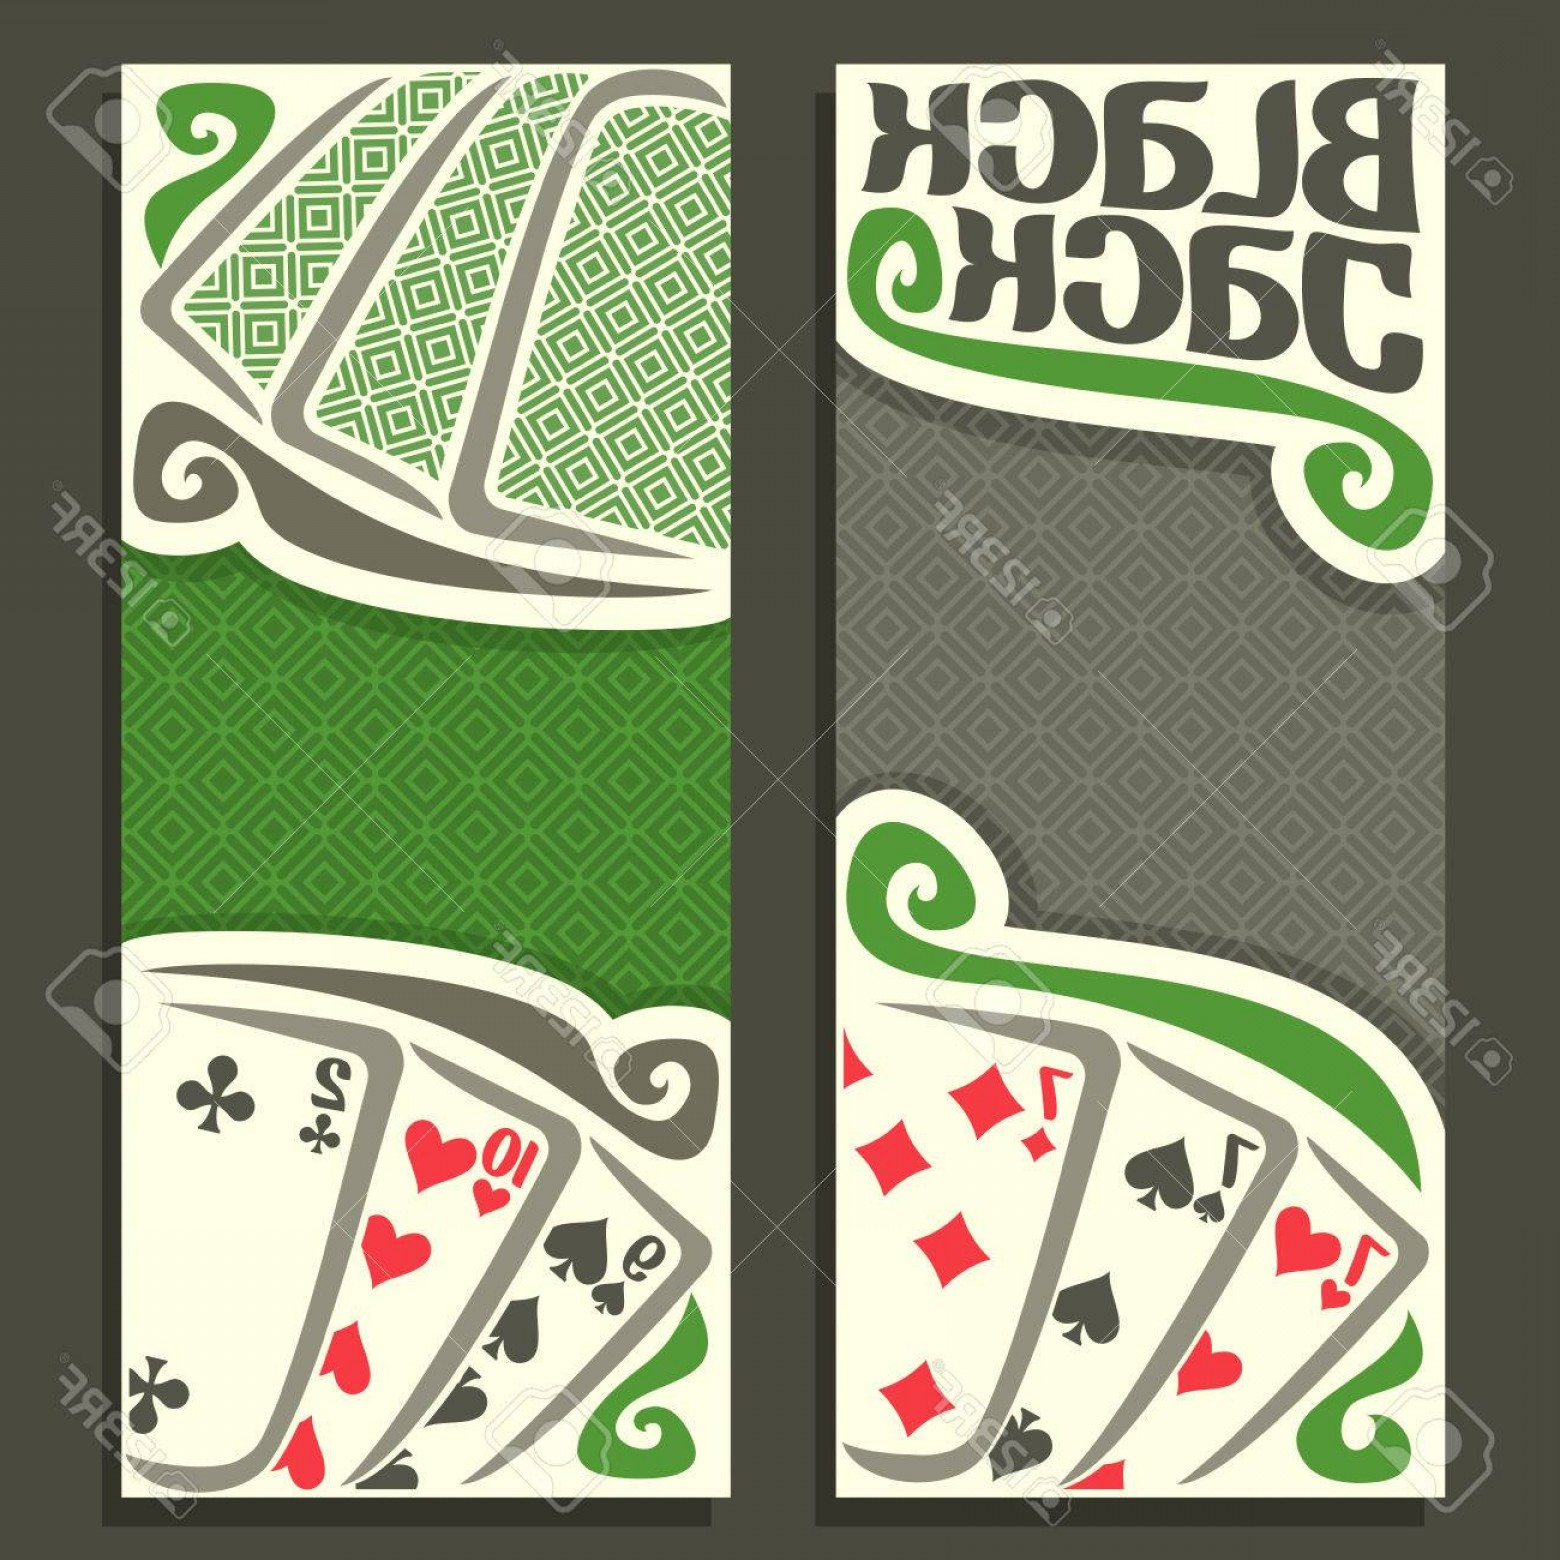 10 Playing Card Vector: Photostock Vector Vector Vertical Banners Black Jack For Text Combination Playing Cards For Gamble